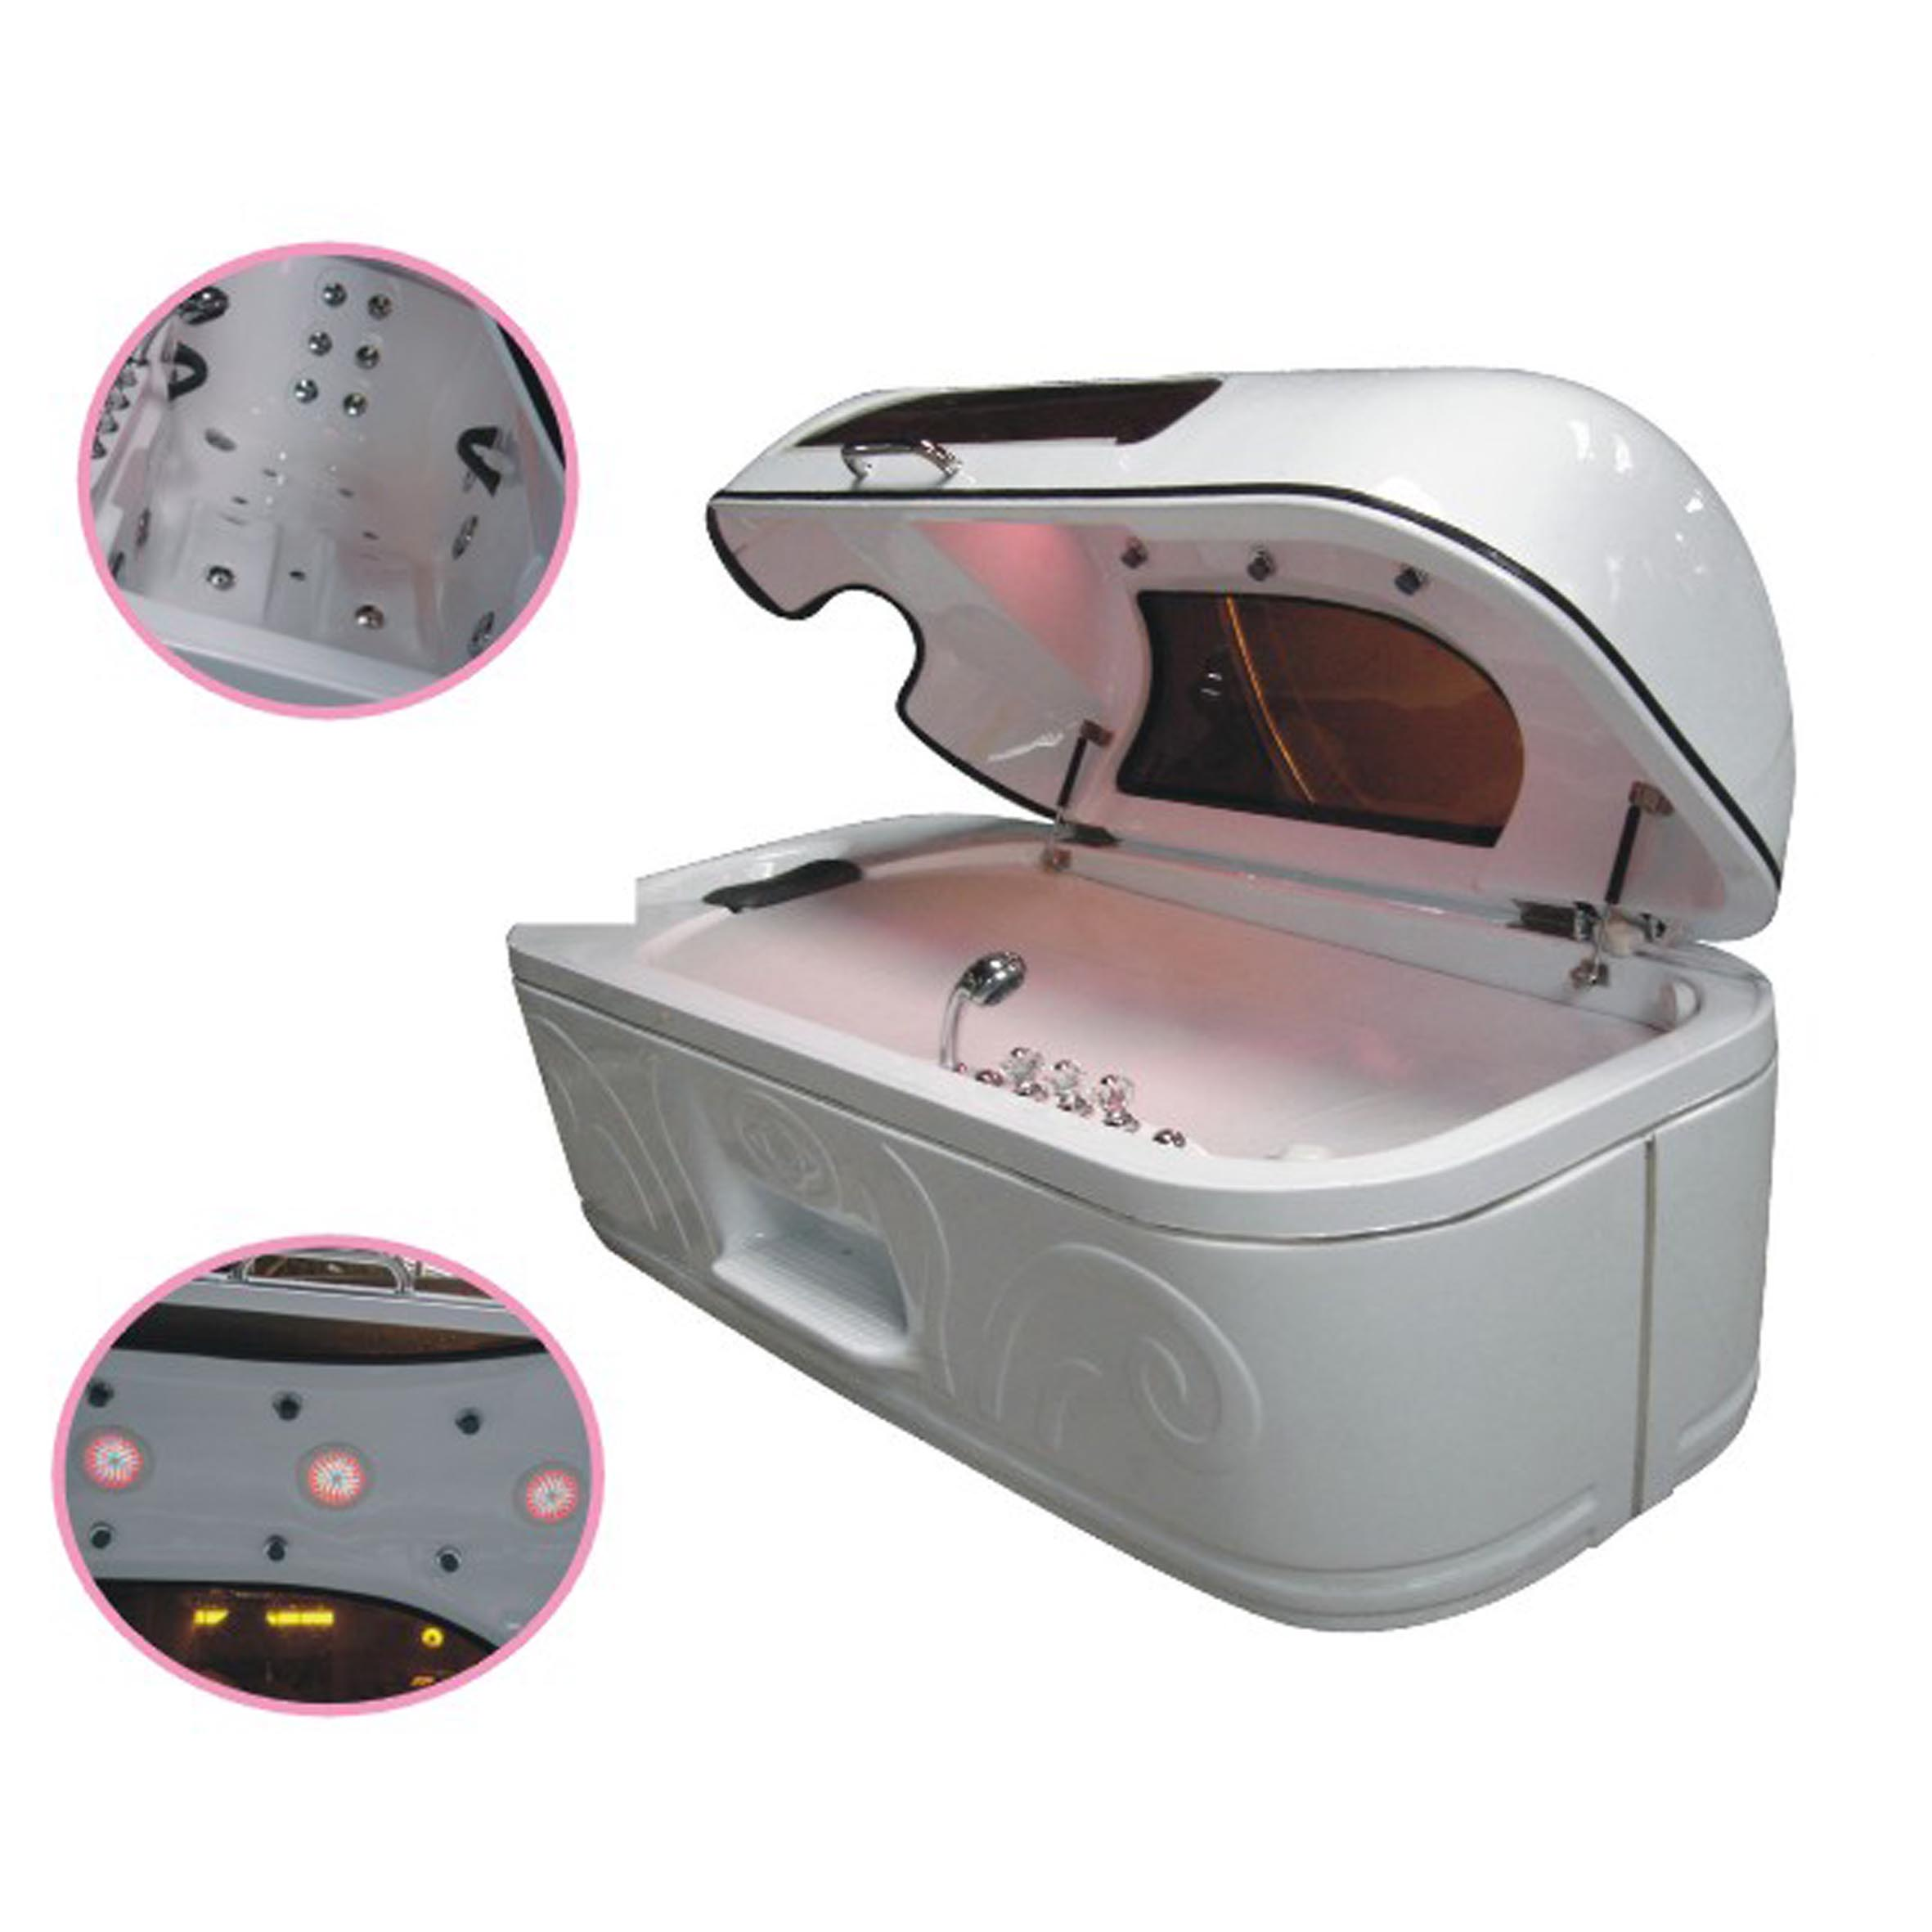 Beauty spa equipment images for A and s salon supplies